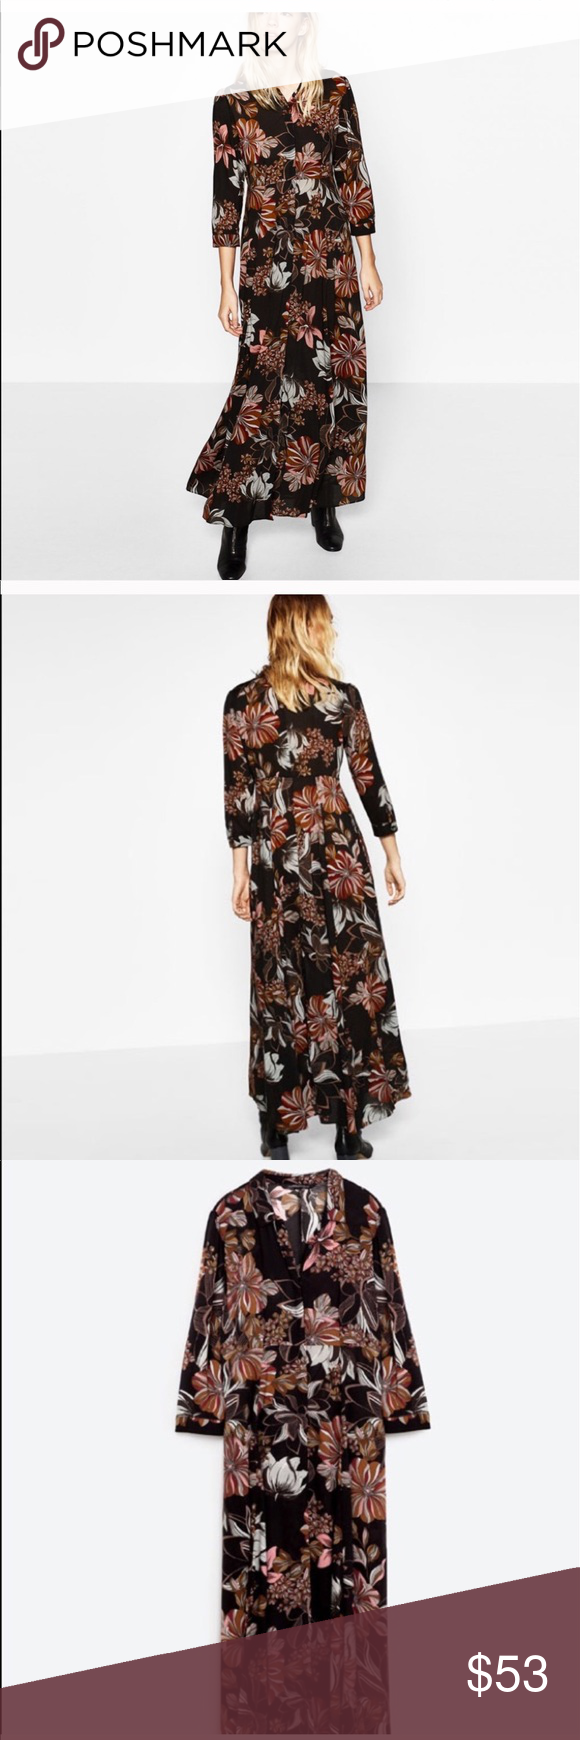 Zara long dress w floral print small nwt gathered skirt front